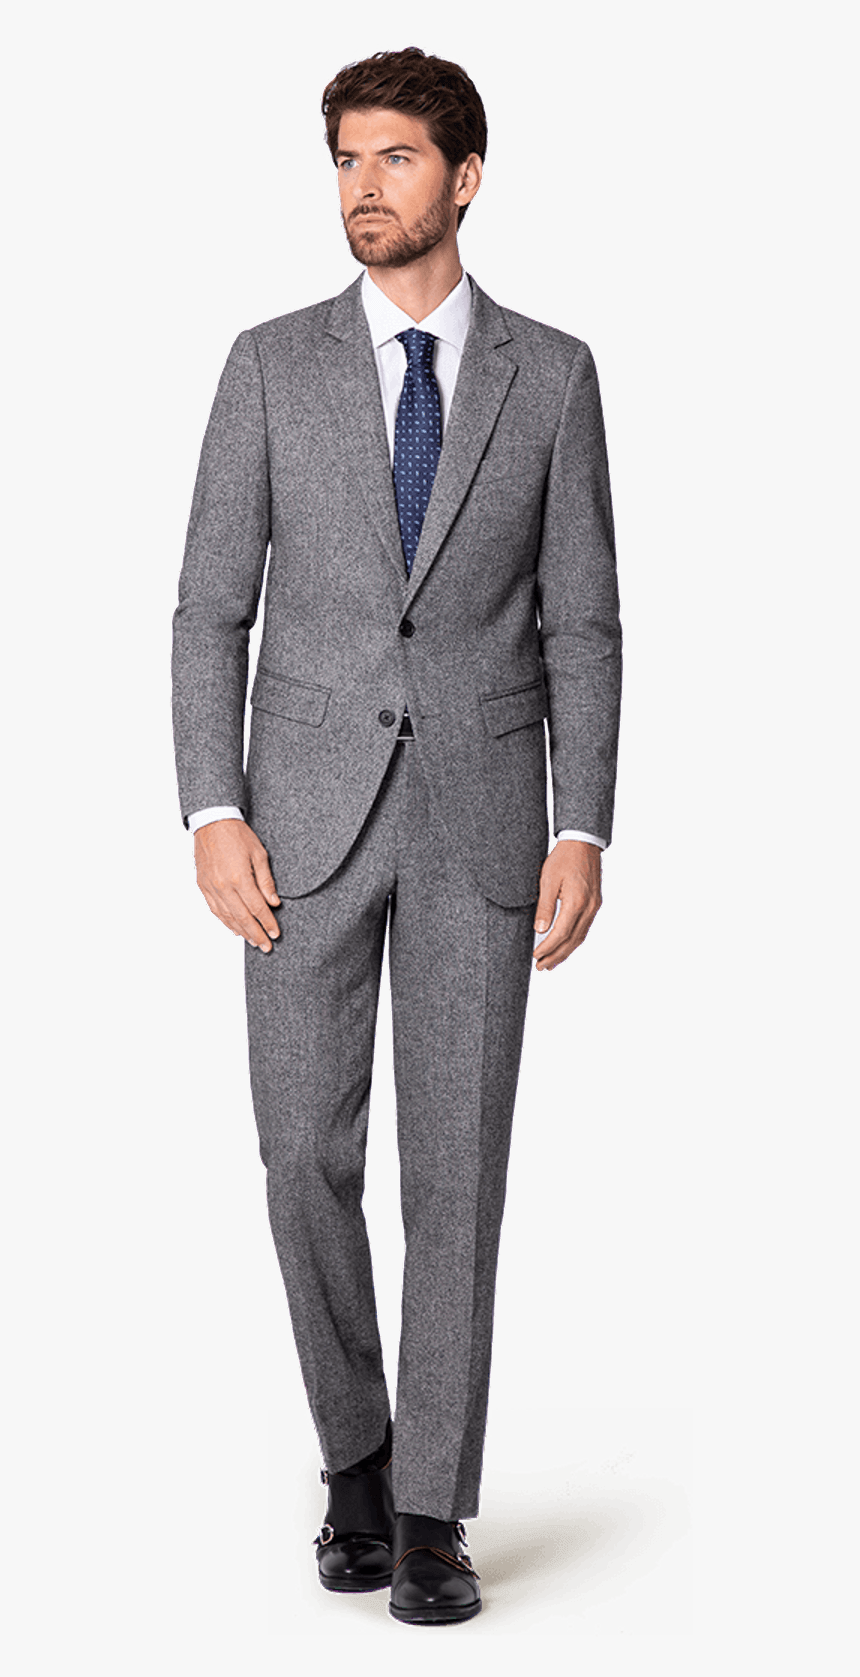 tailored suit suits for men hd png download kindpng tailored suit suits for men hd png